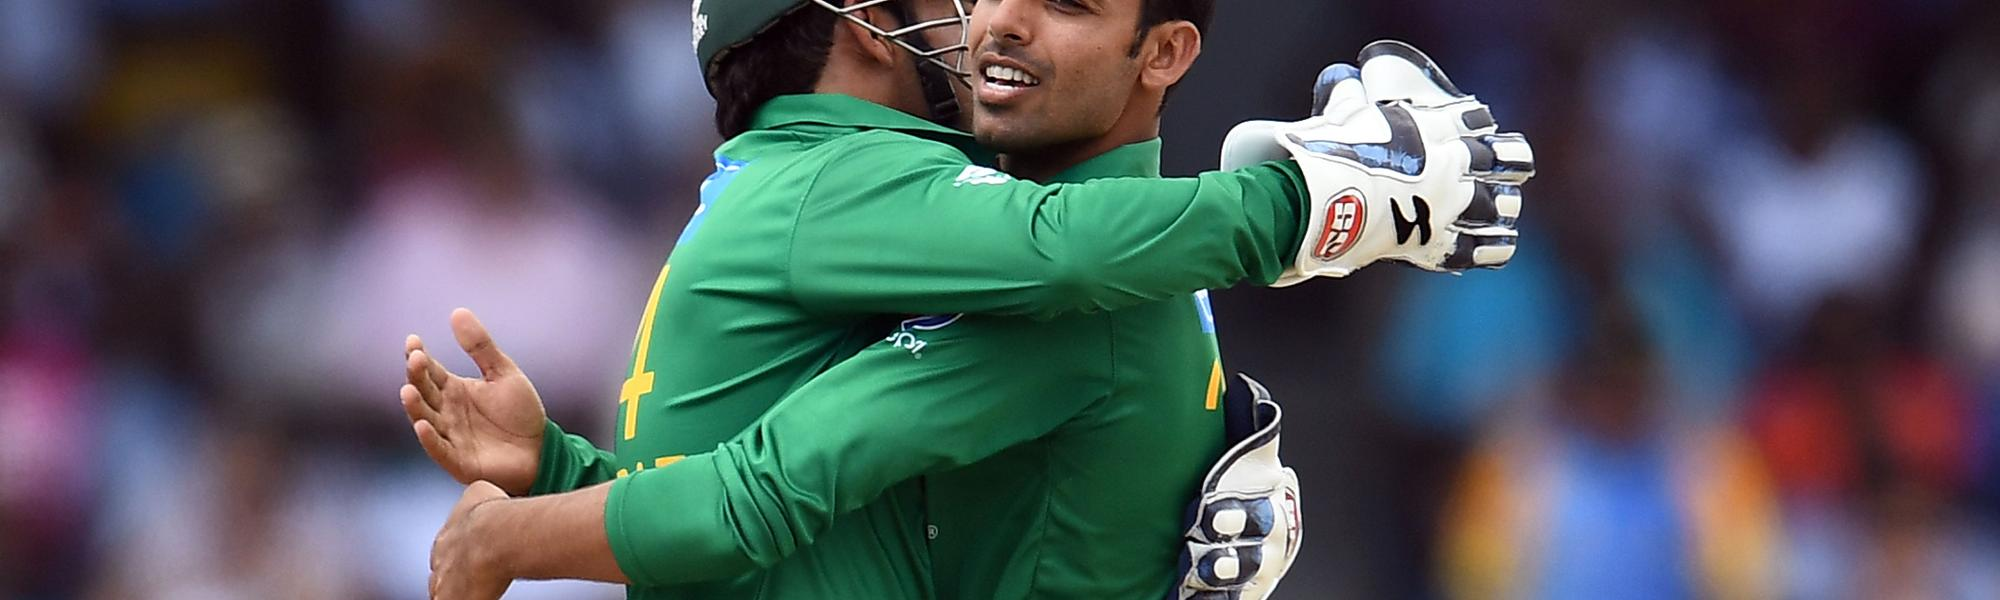 Shadab's mesmerising mixture of leg-breaks and googlies earned him figures of 3 for 7